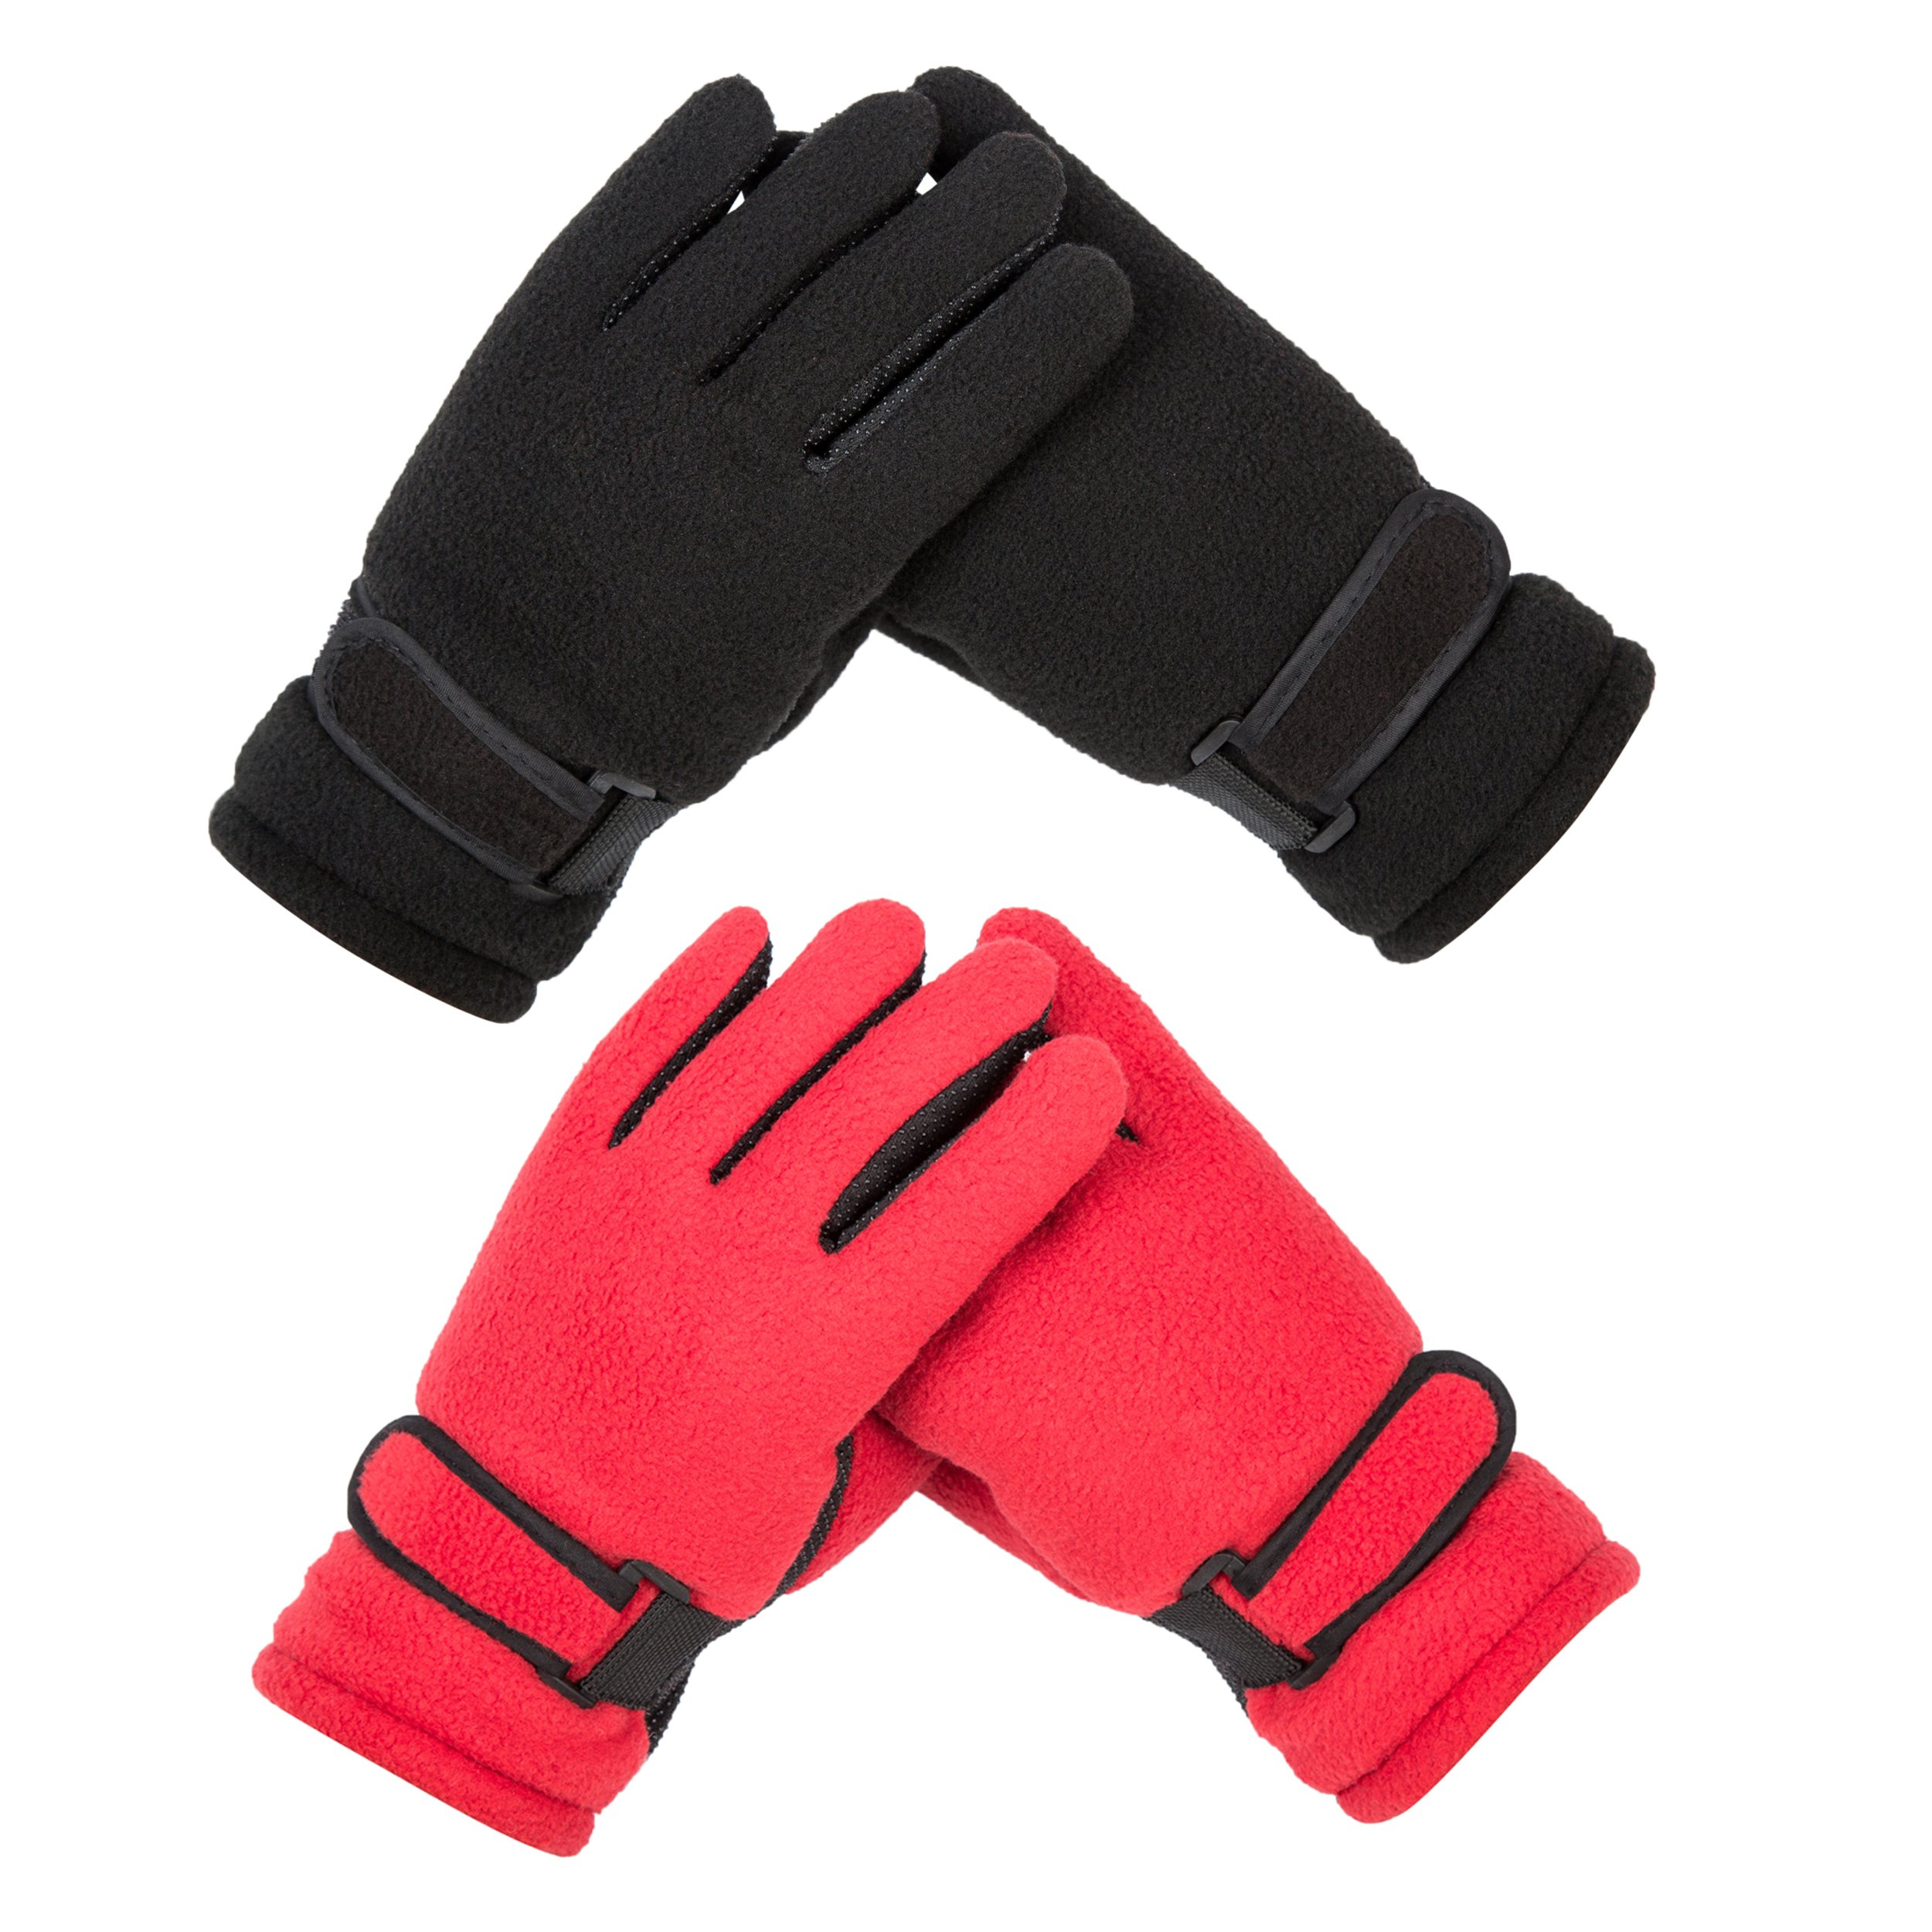 Kid's Boy Girl Fleece Winter Gloves Mittens Riding Driving Running Ski Outdoor Sports (2pairs-black blue red random)